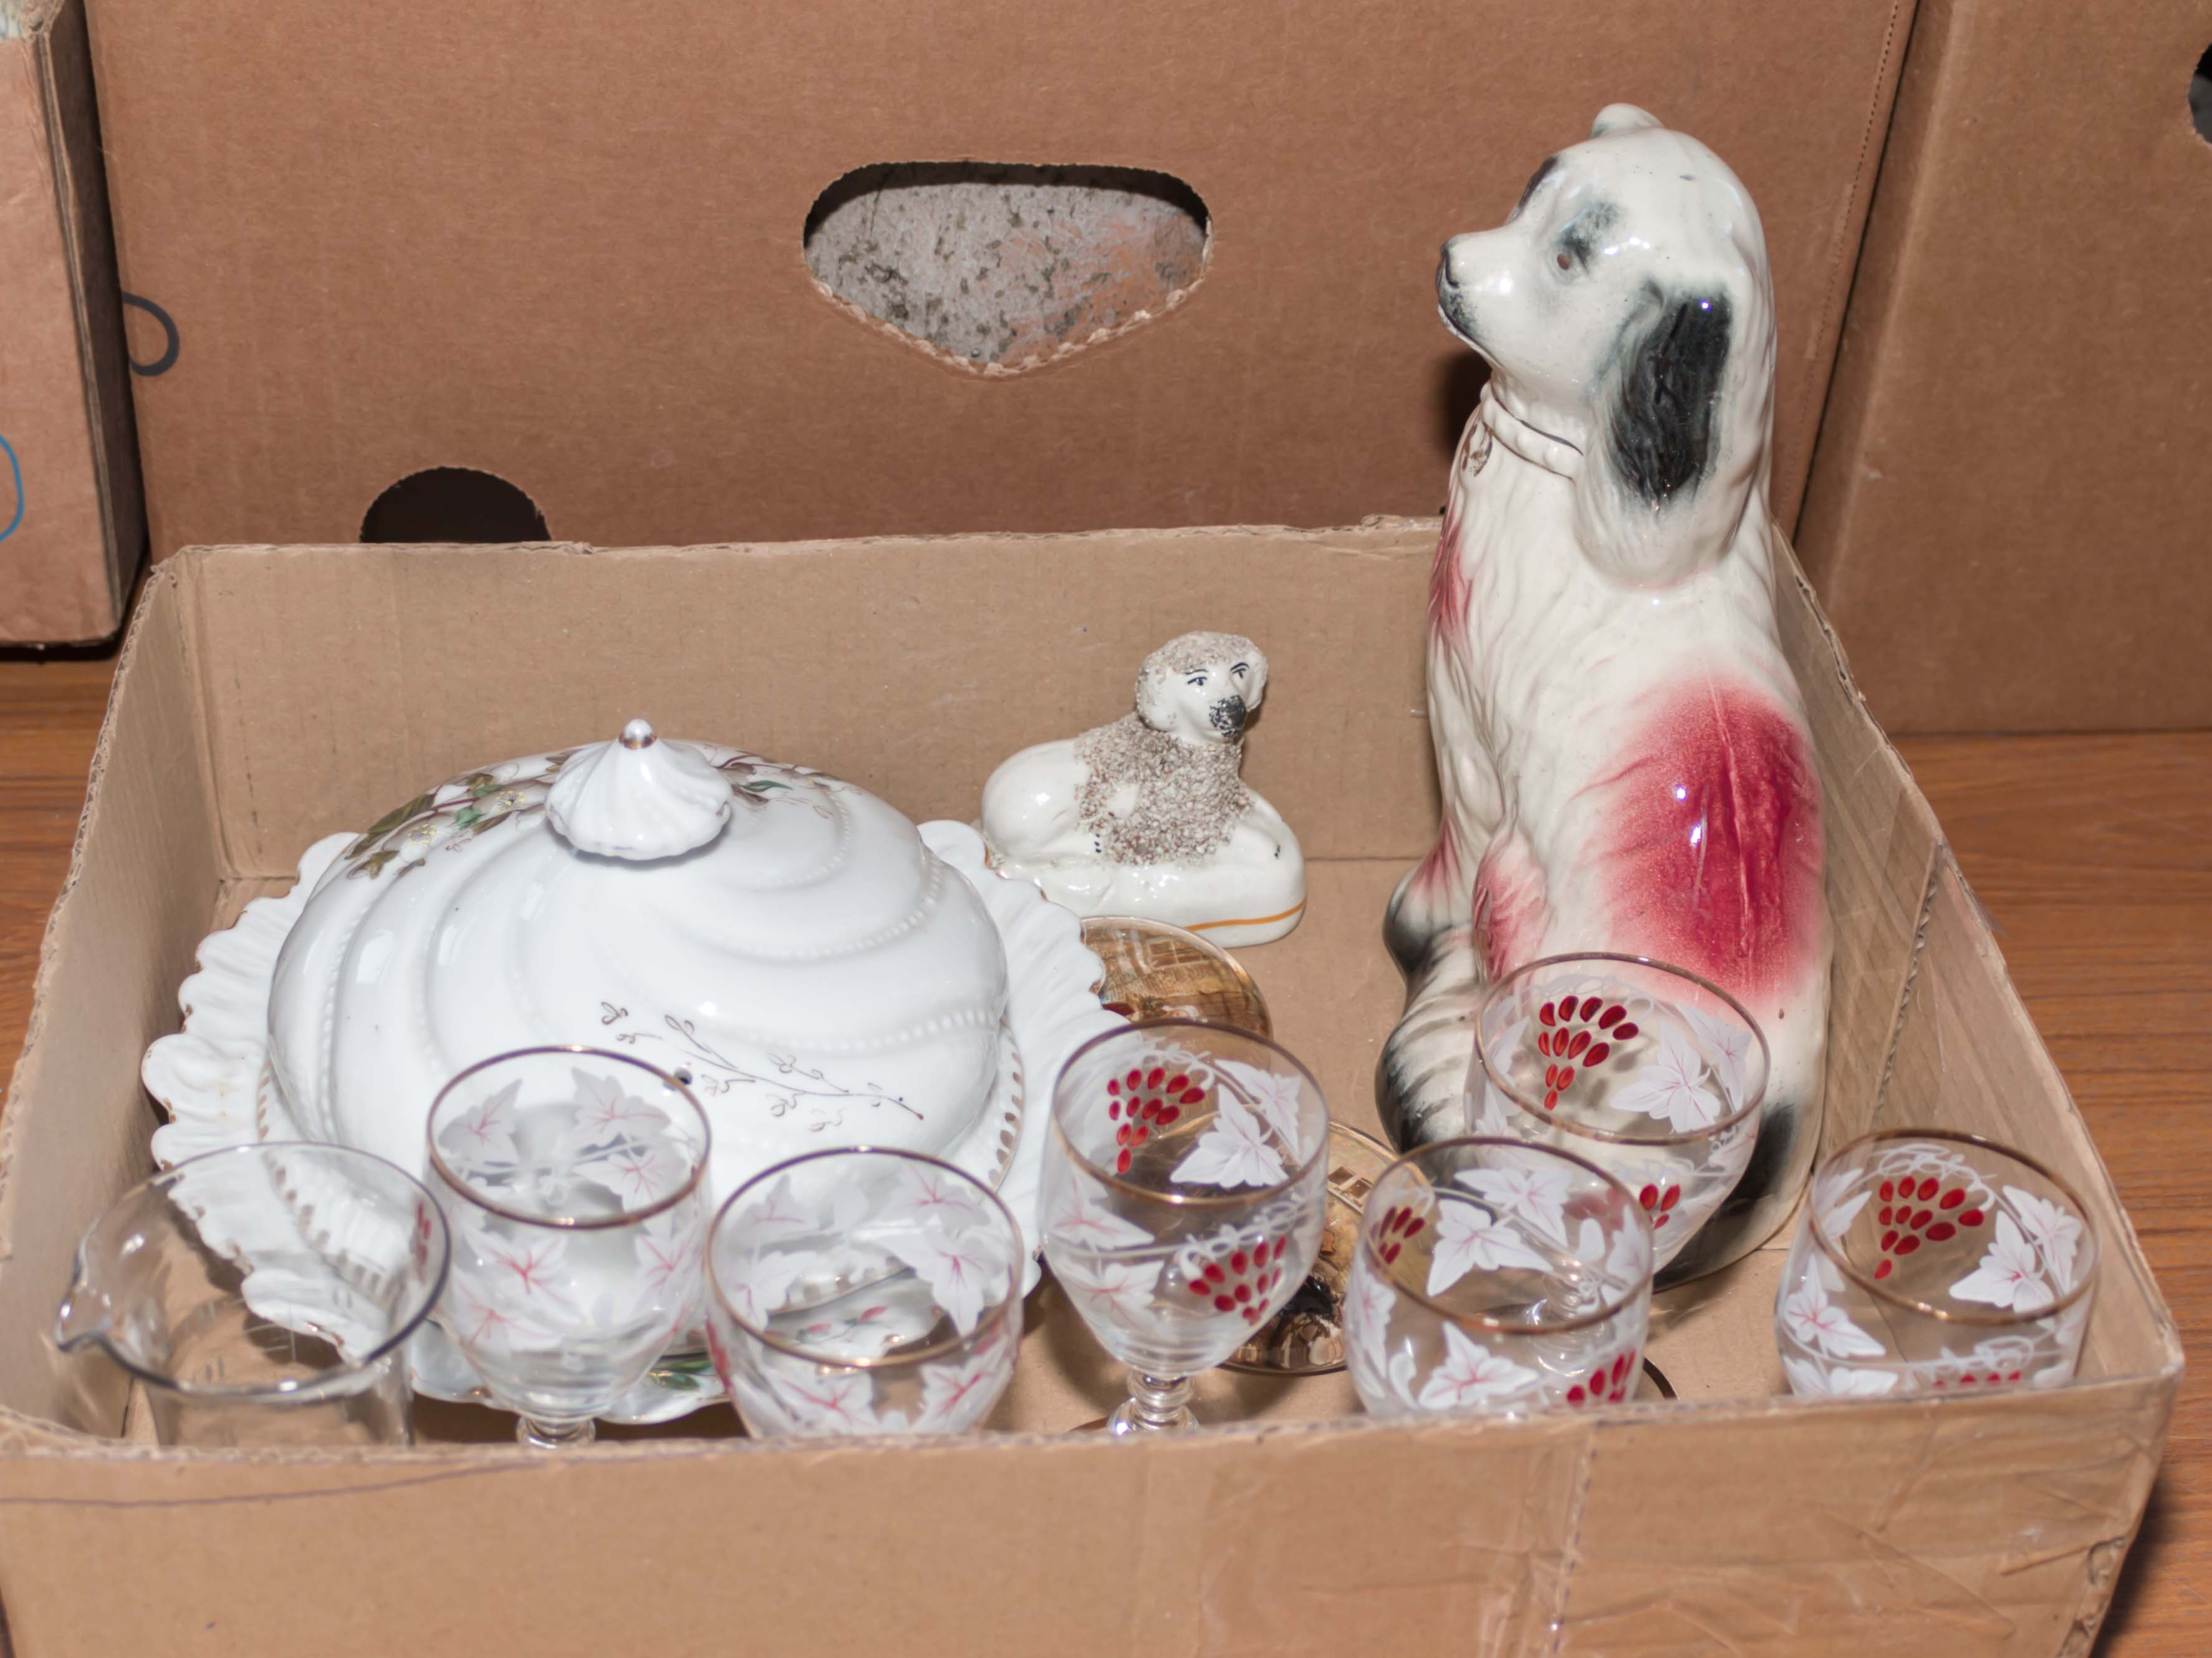 Lot 33 - A Wally dog, muffin dish, 6 glasses and other items